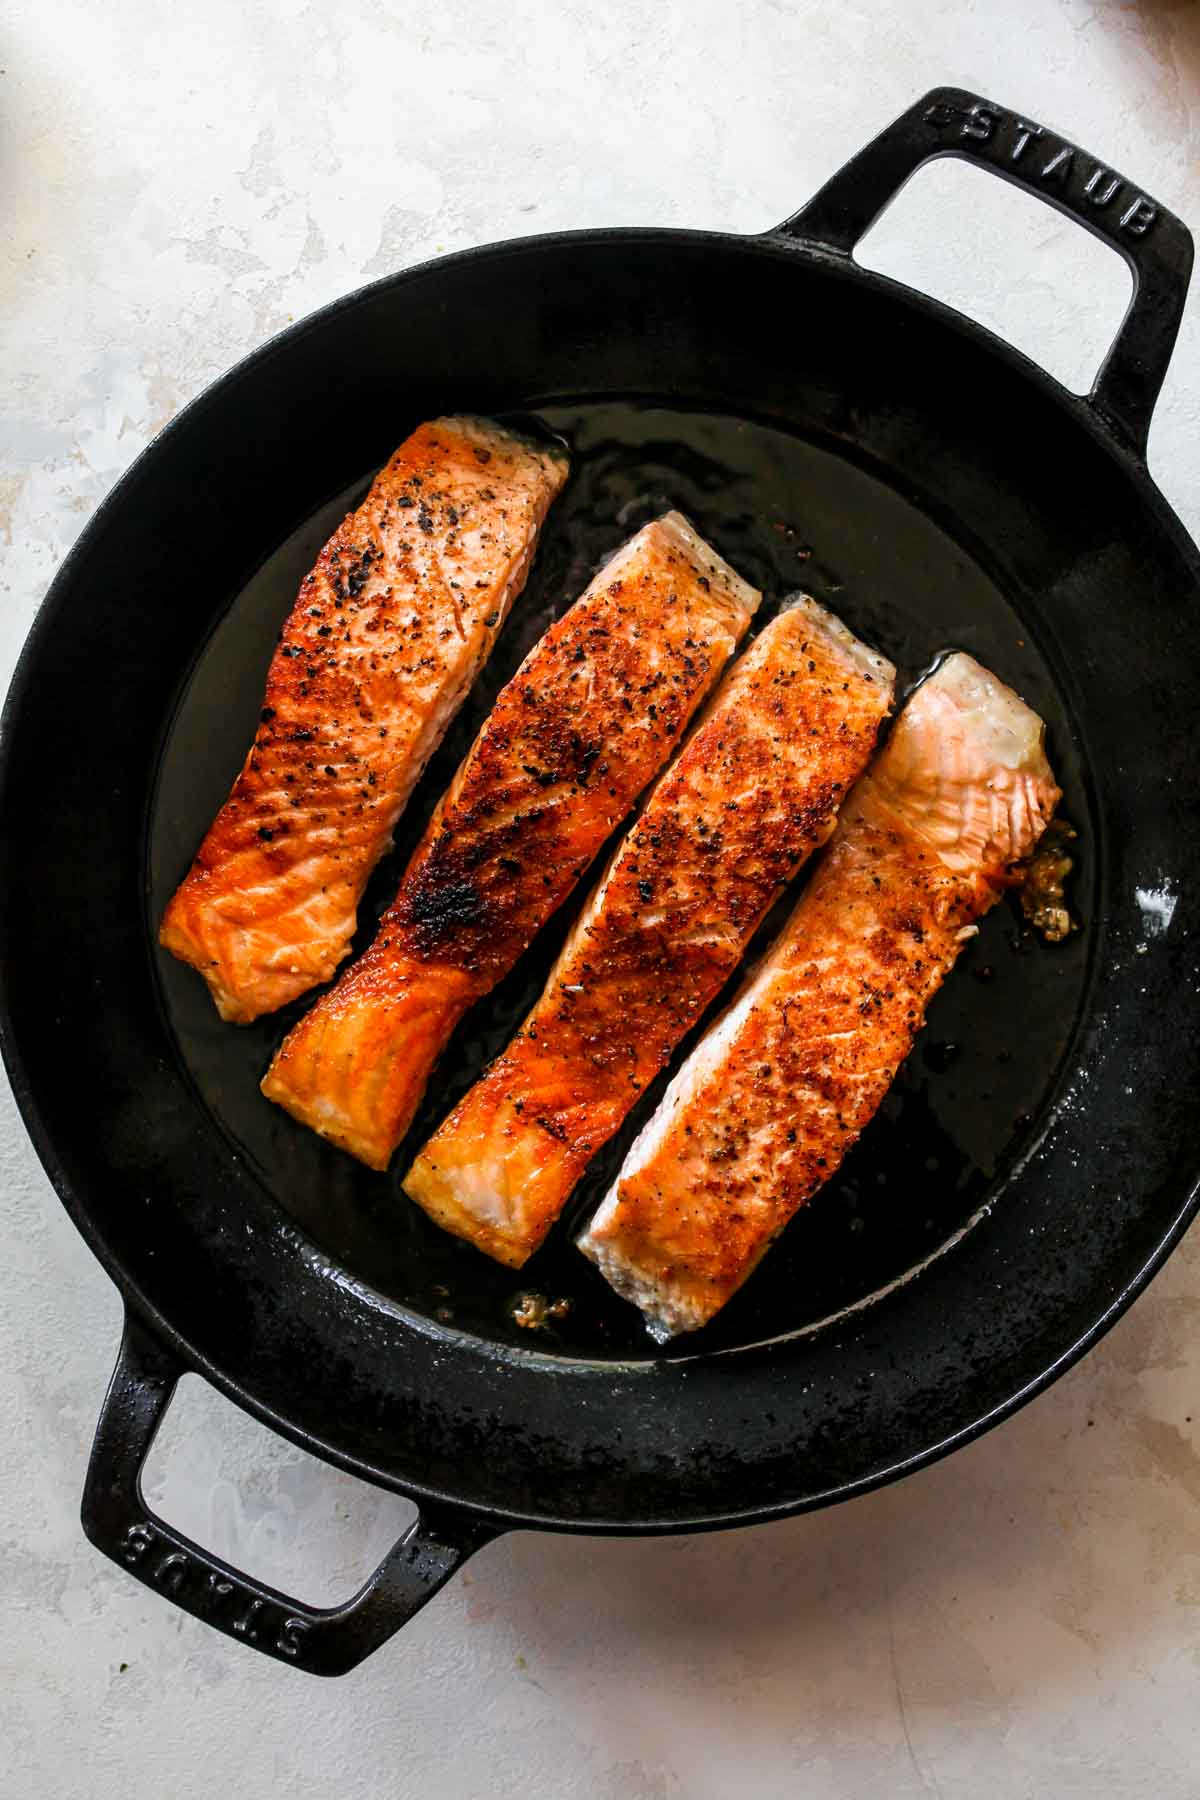 Four salmon fillets being seared in a cast iron skillet